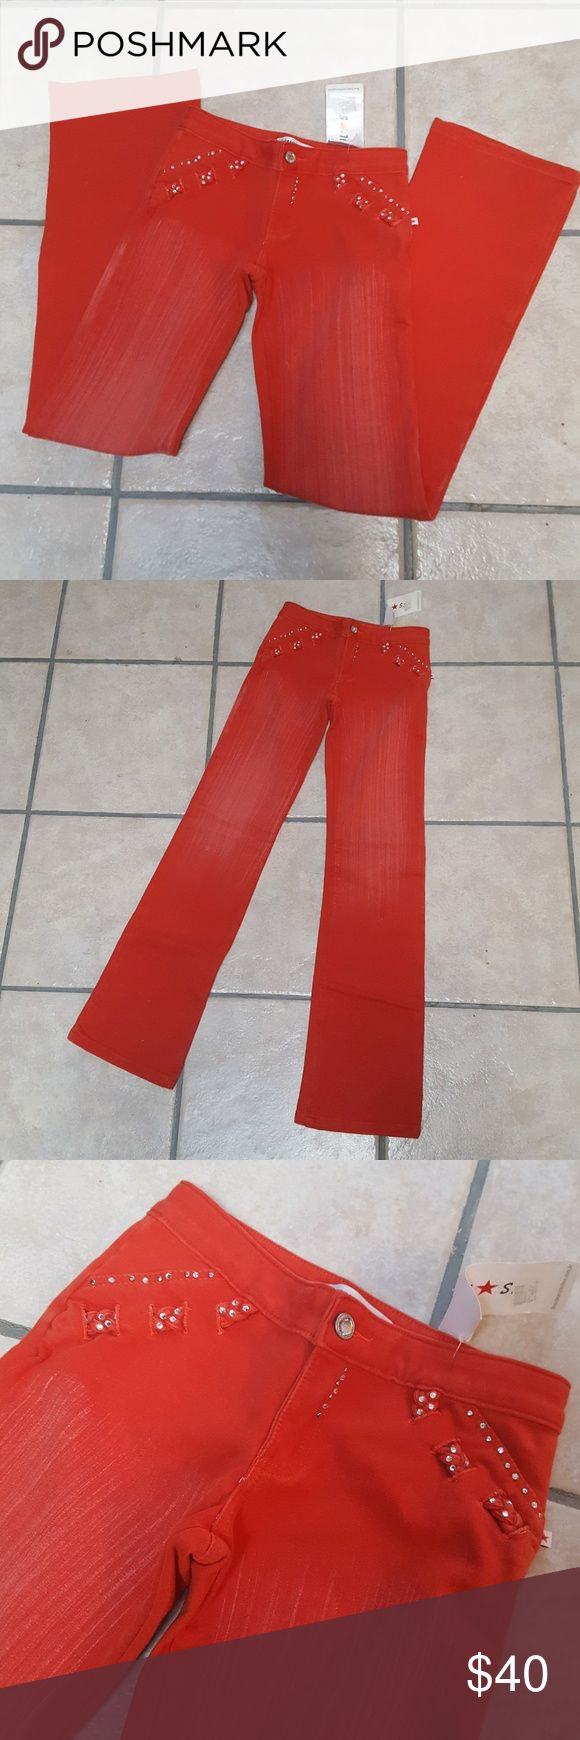 Sale!!NWT Brasil Star super stretch Moleton pants Sale!! price dropped limited time!! $40----$35  NWT Brazil Star Moleton pants  Size Brazilian 36/Colombian 6/US 0-1(XS) Made in Brazil. Just tried on and kept in closet. Washed and Super stretchy design Moleton pants. make your butt lift well;) Brasil Star Jeans Boot Cut